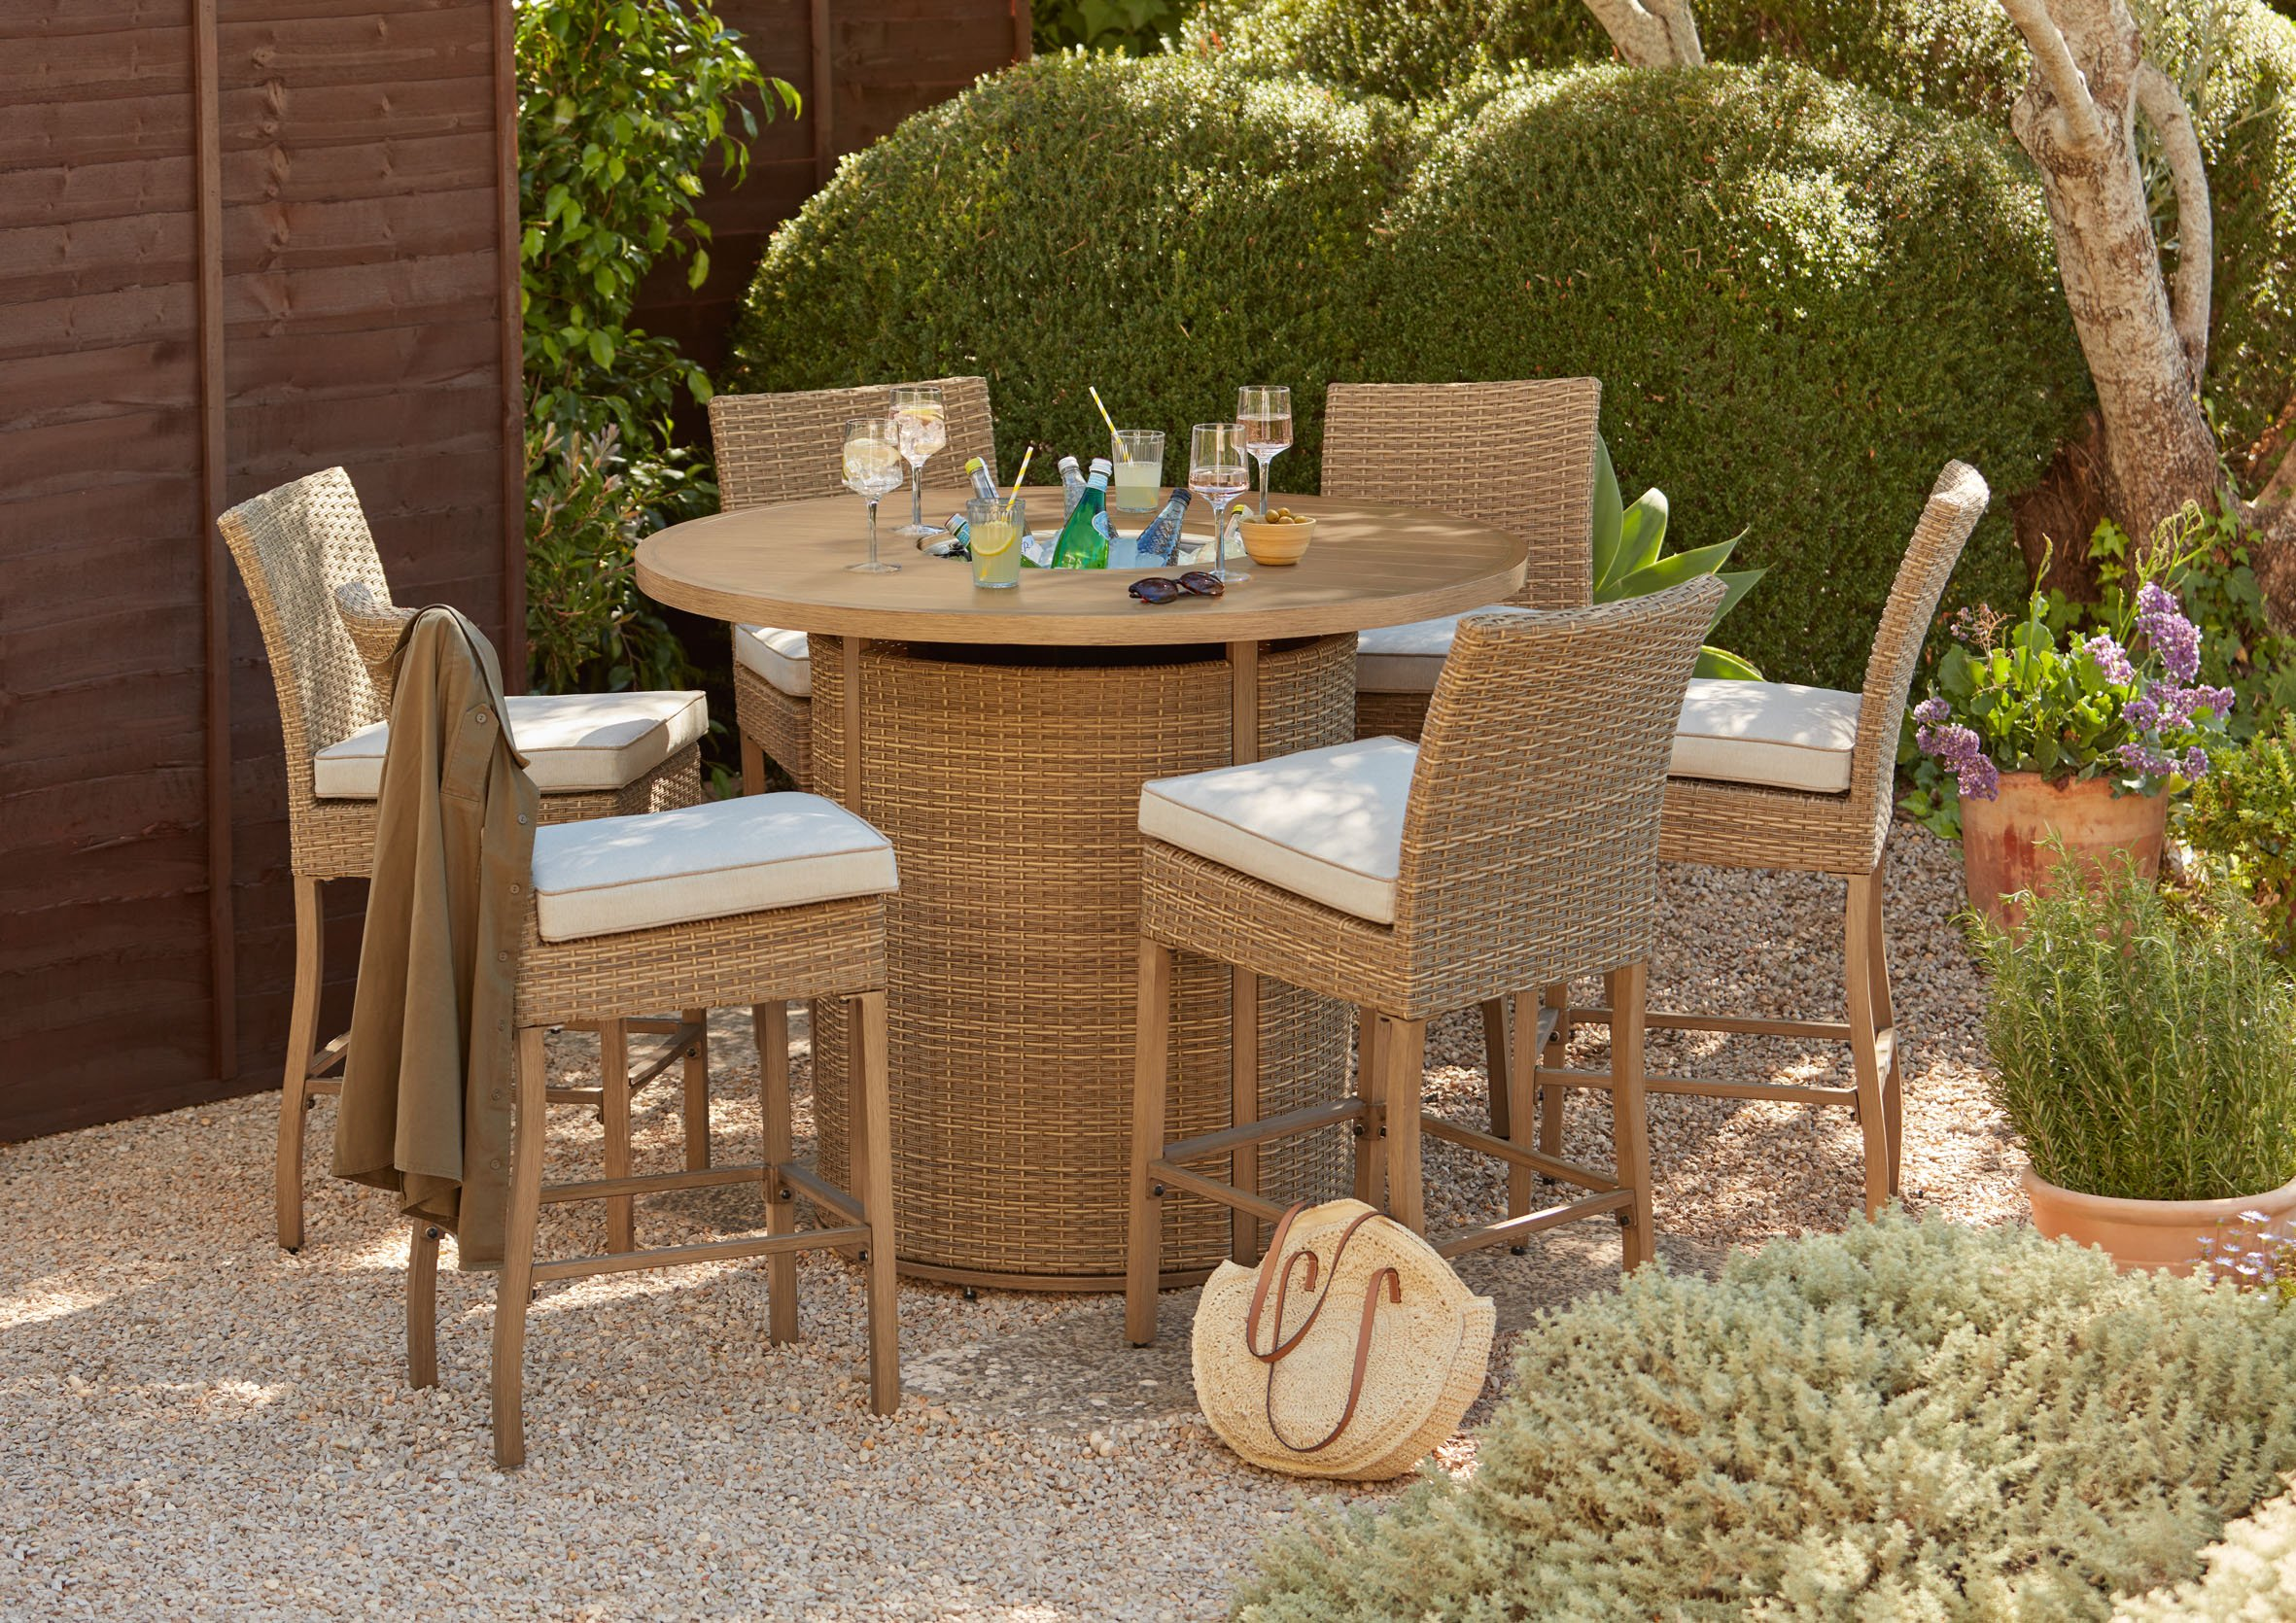 Our Guide to the Best Garden Furniture